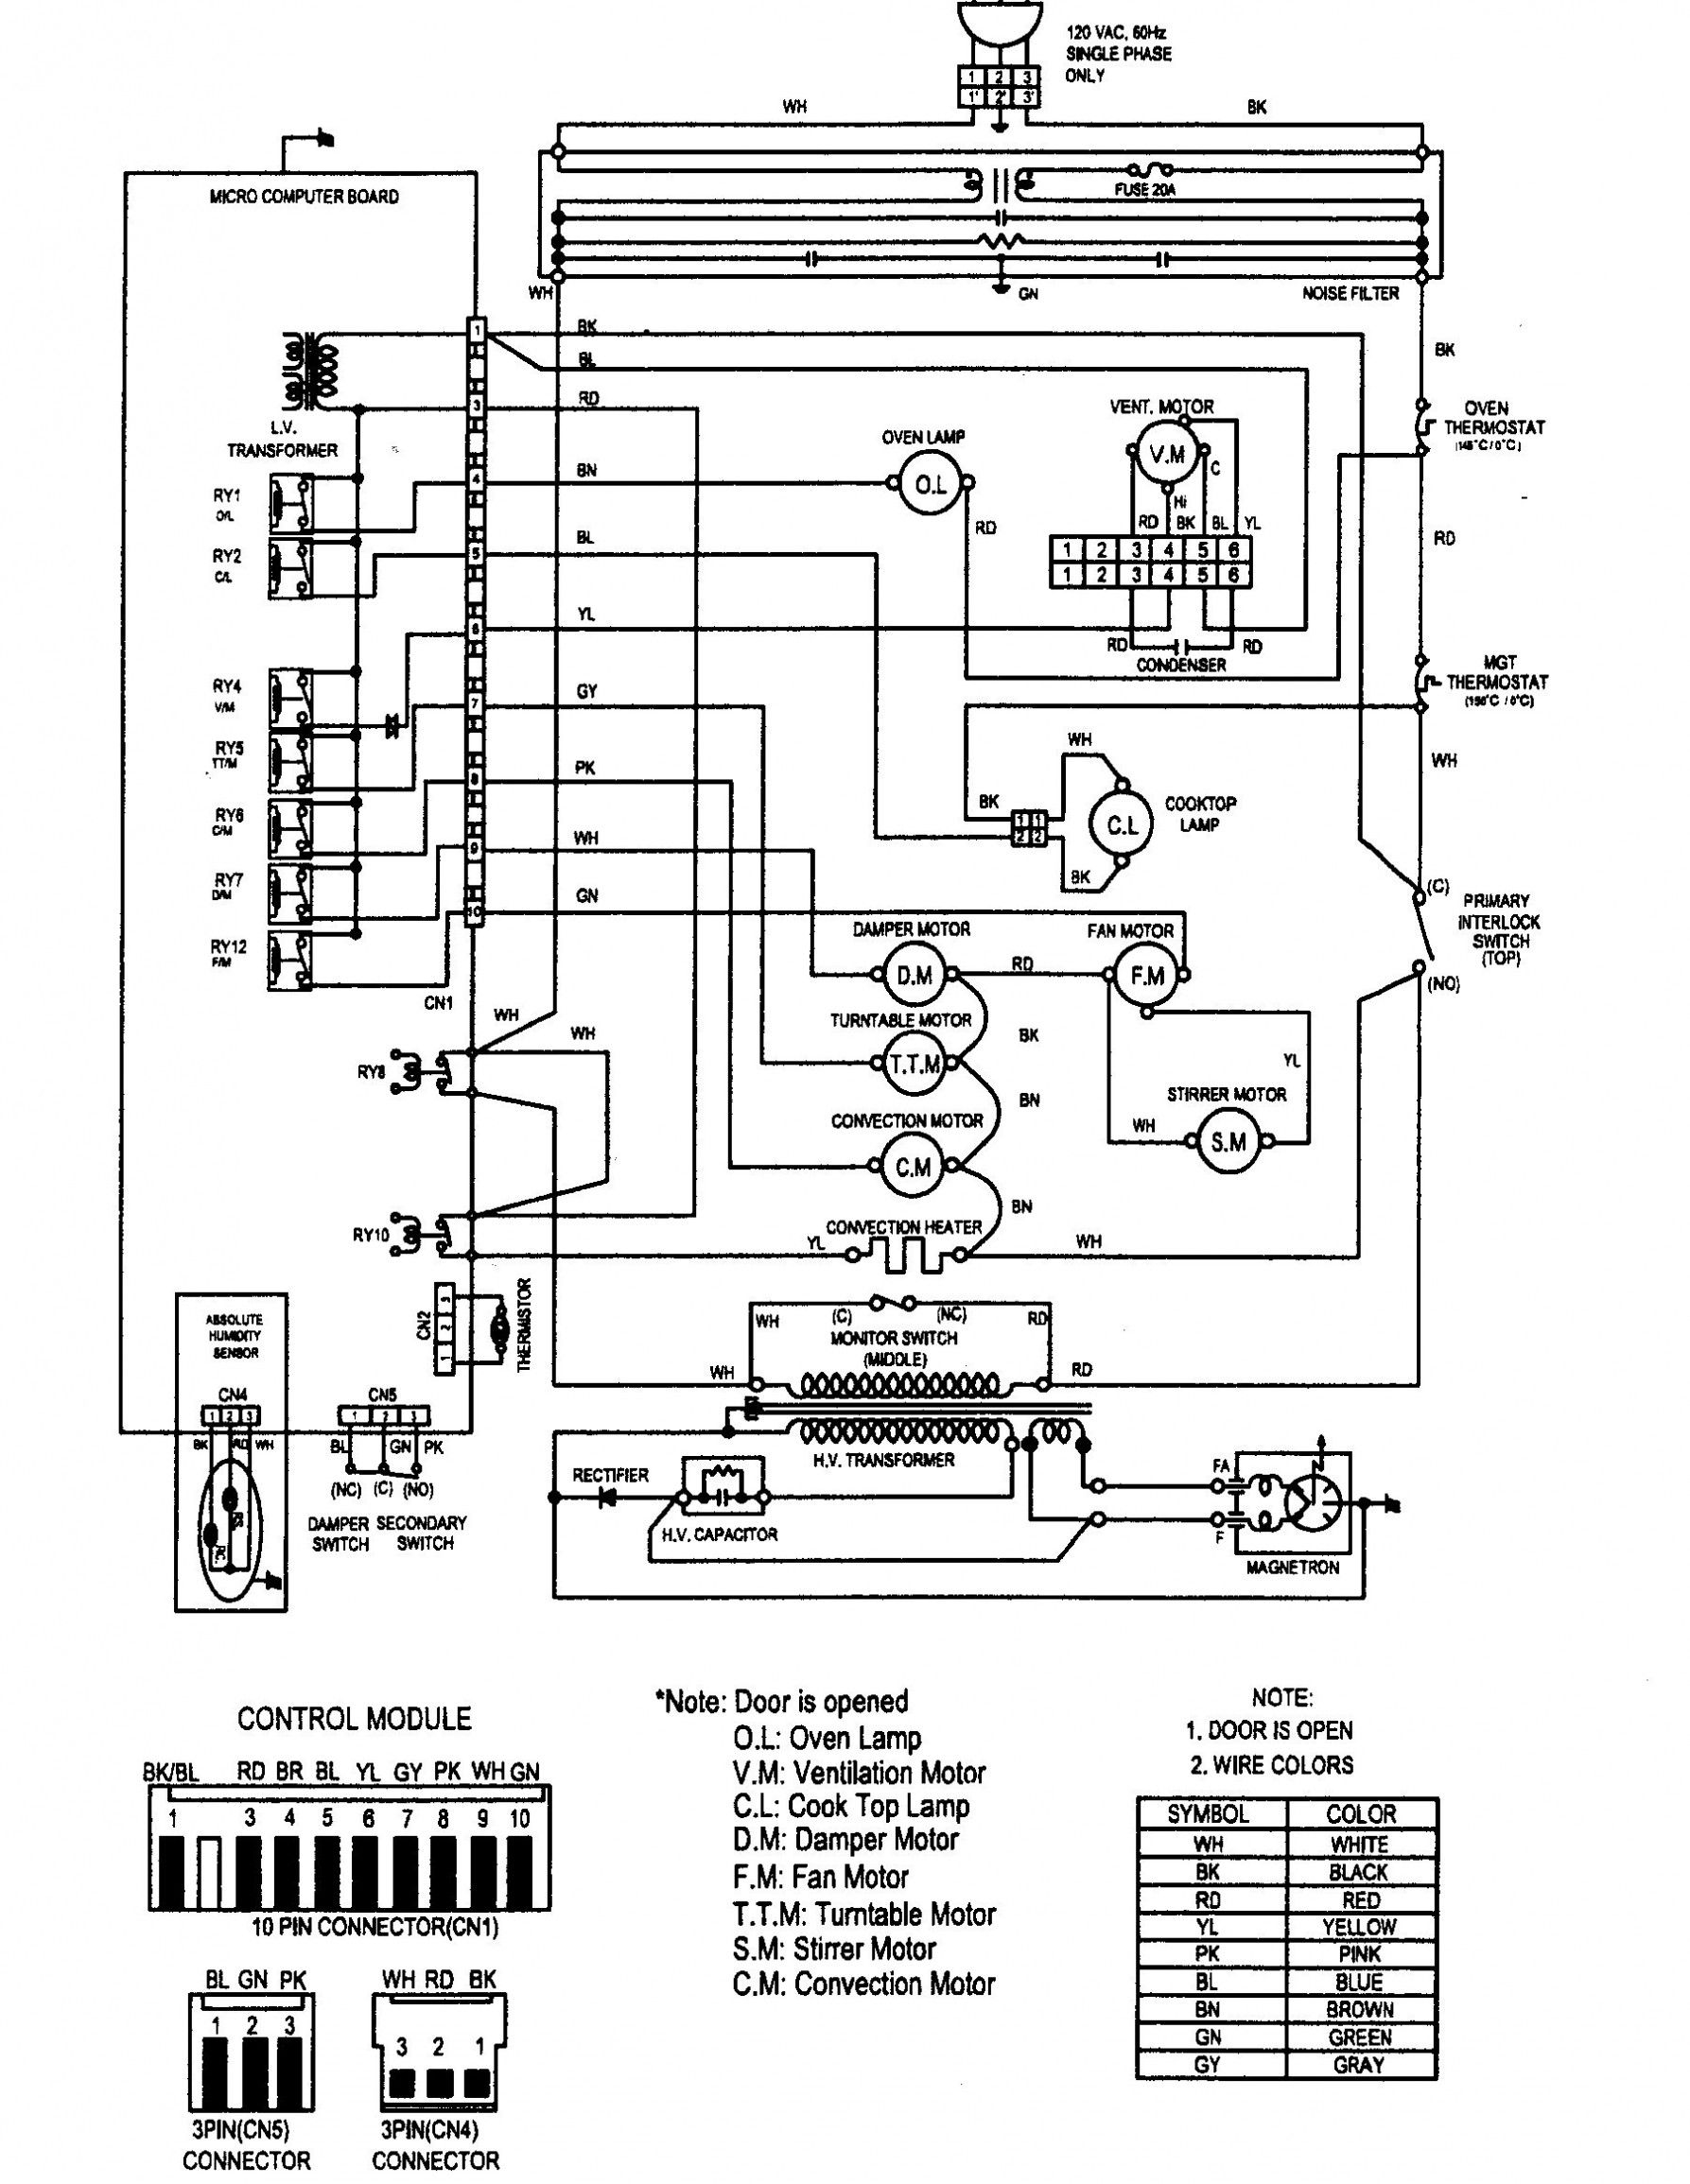 Unique Bosch Dishwasher Motor Wiring Diagram Diagram